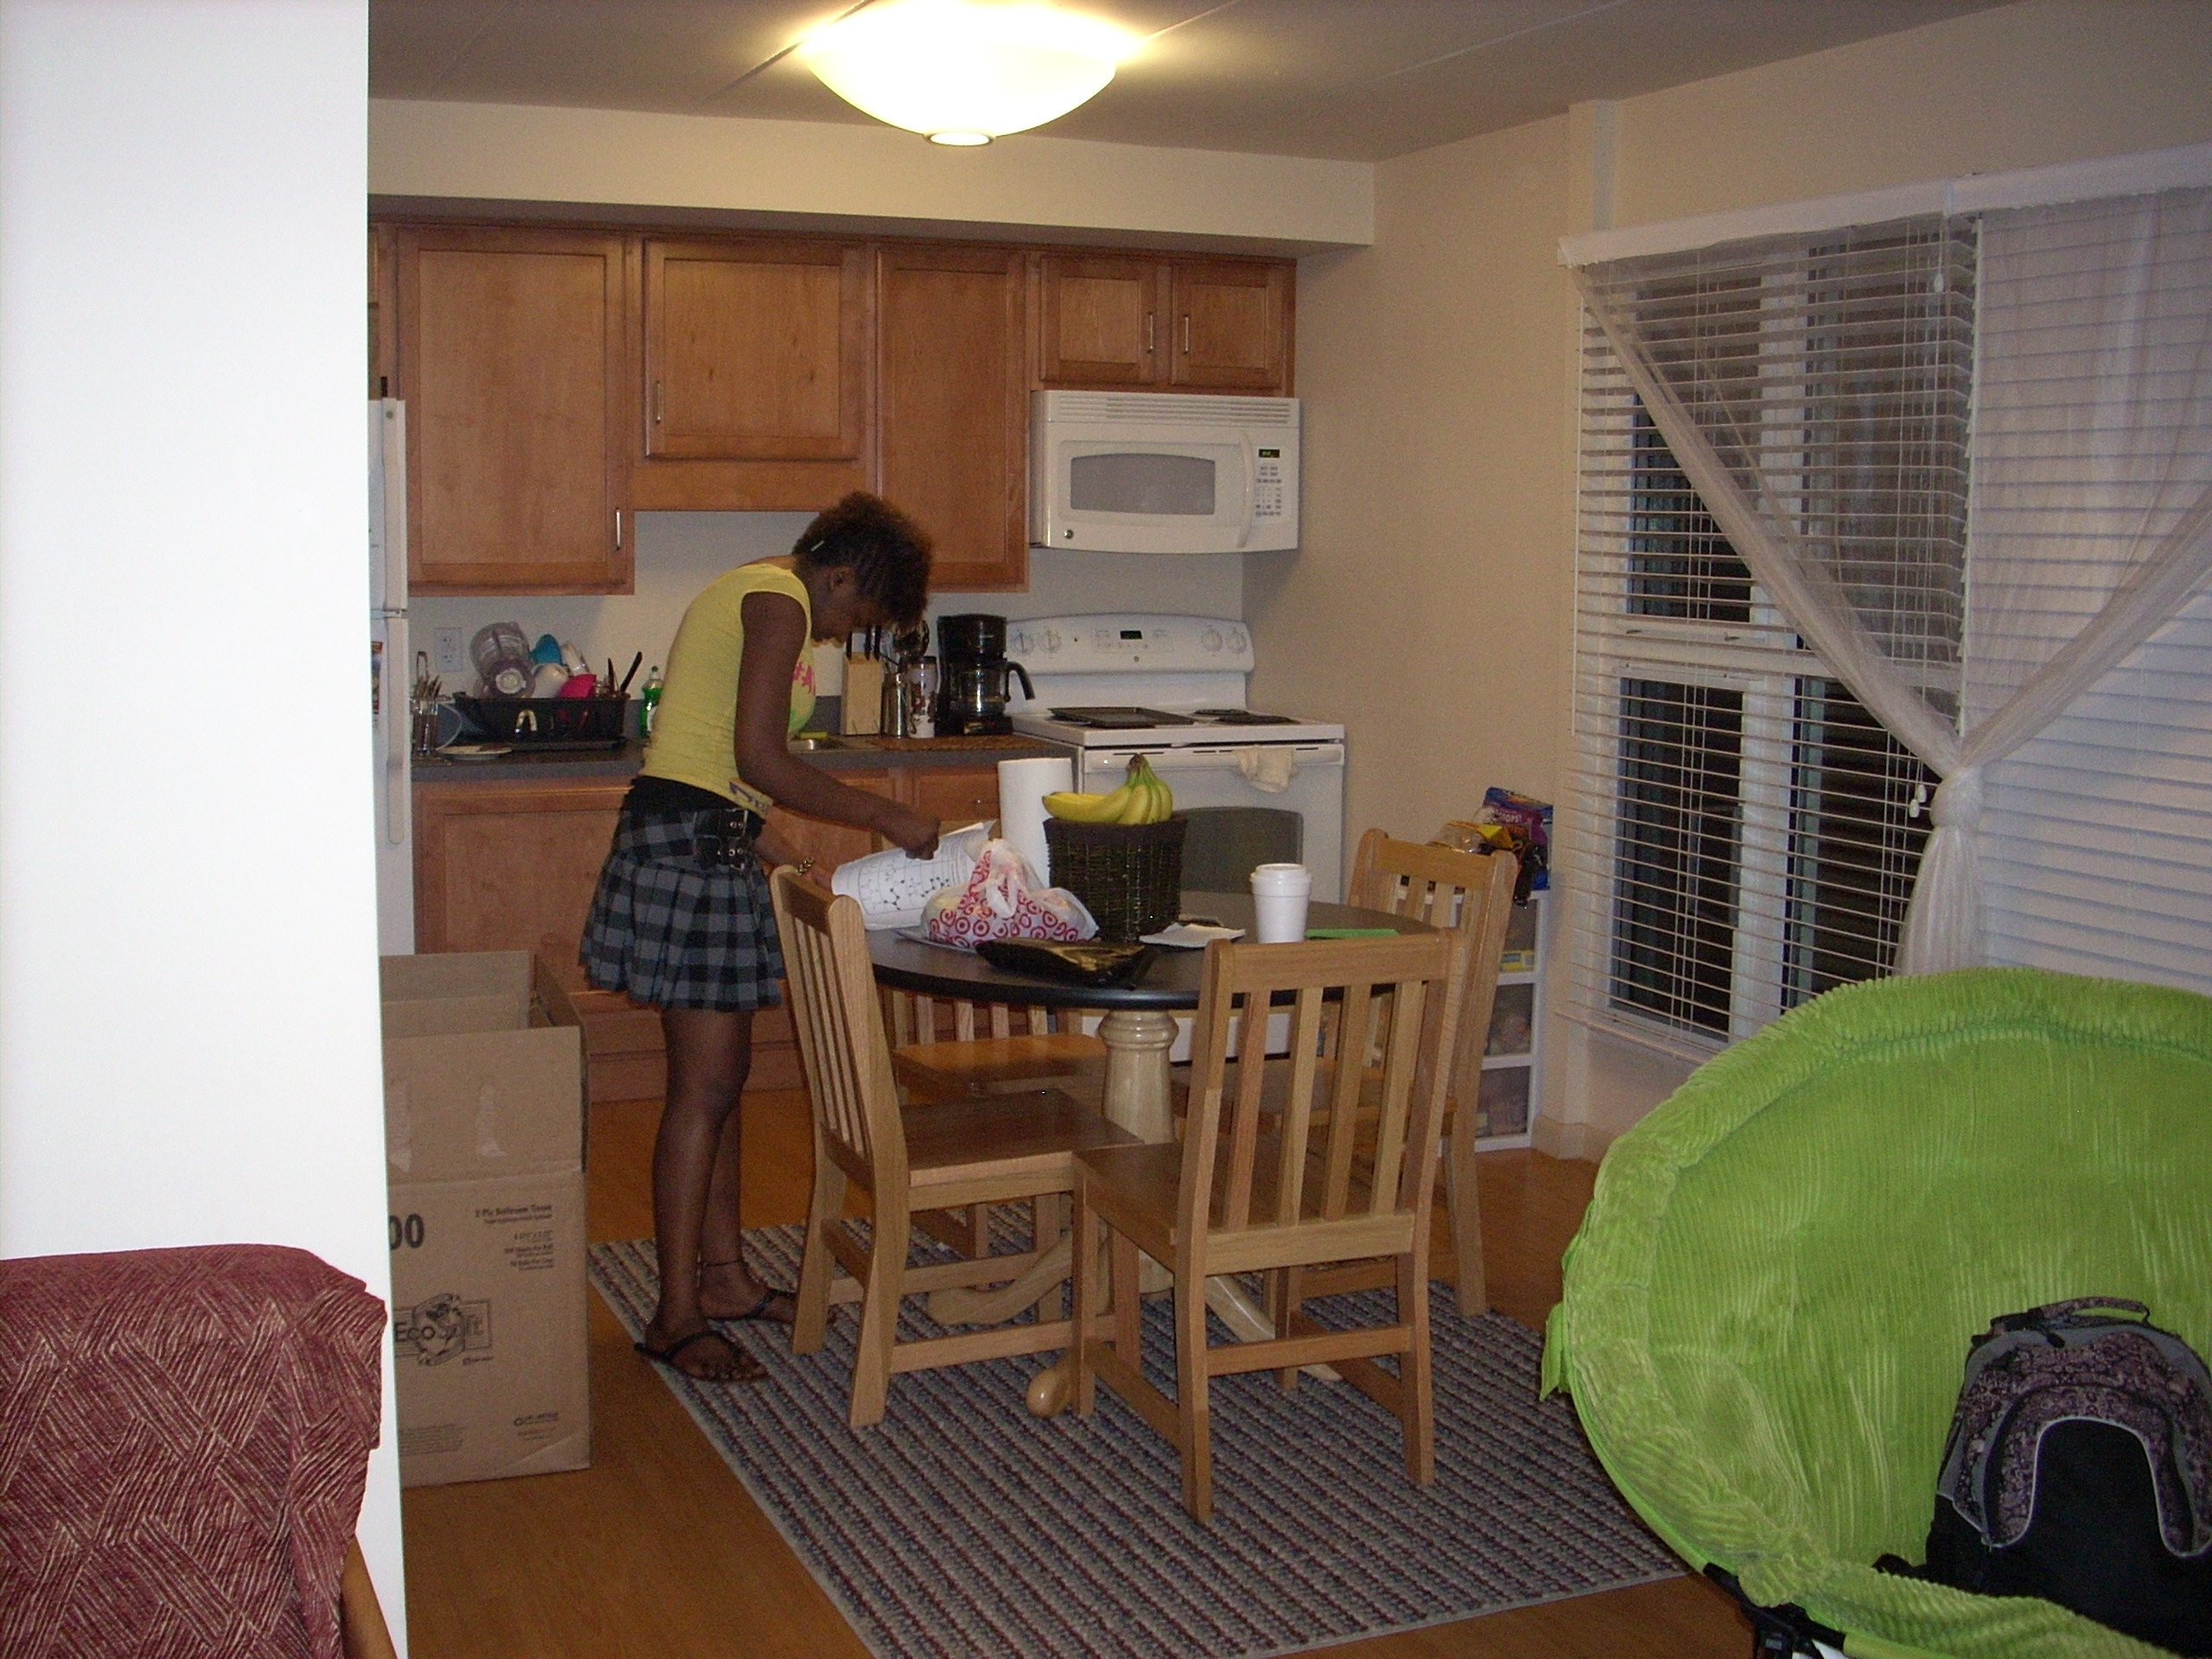 Mcdaniel College Office Of Residence Life with regard to Campus Gardens Apartments